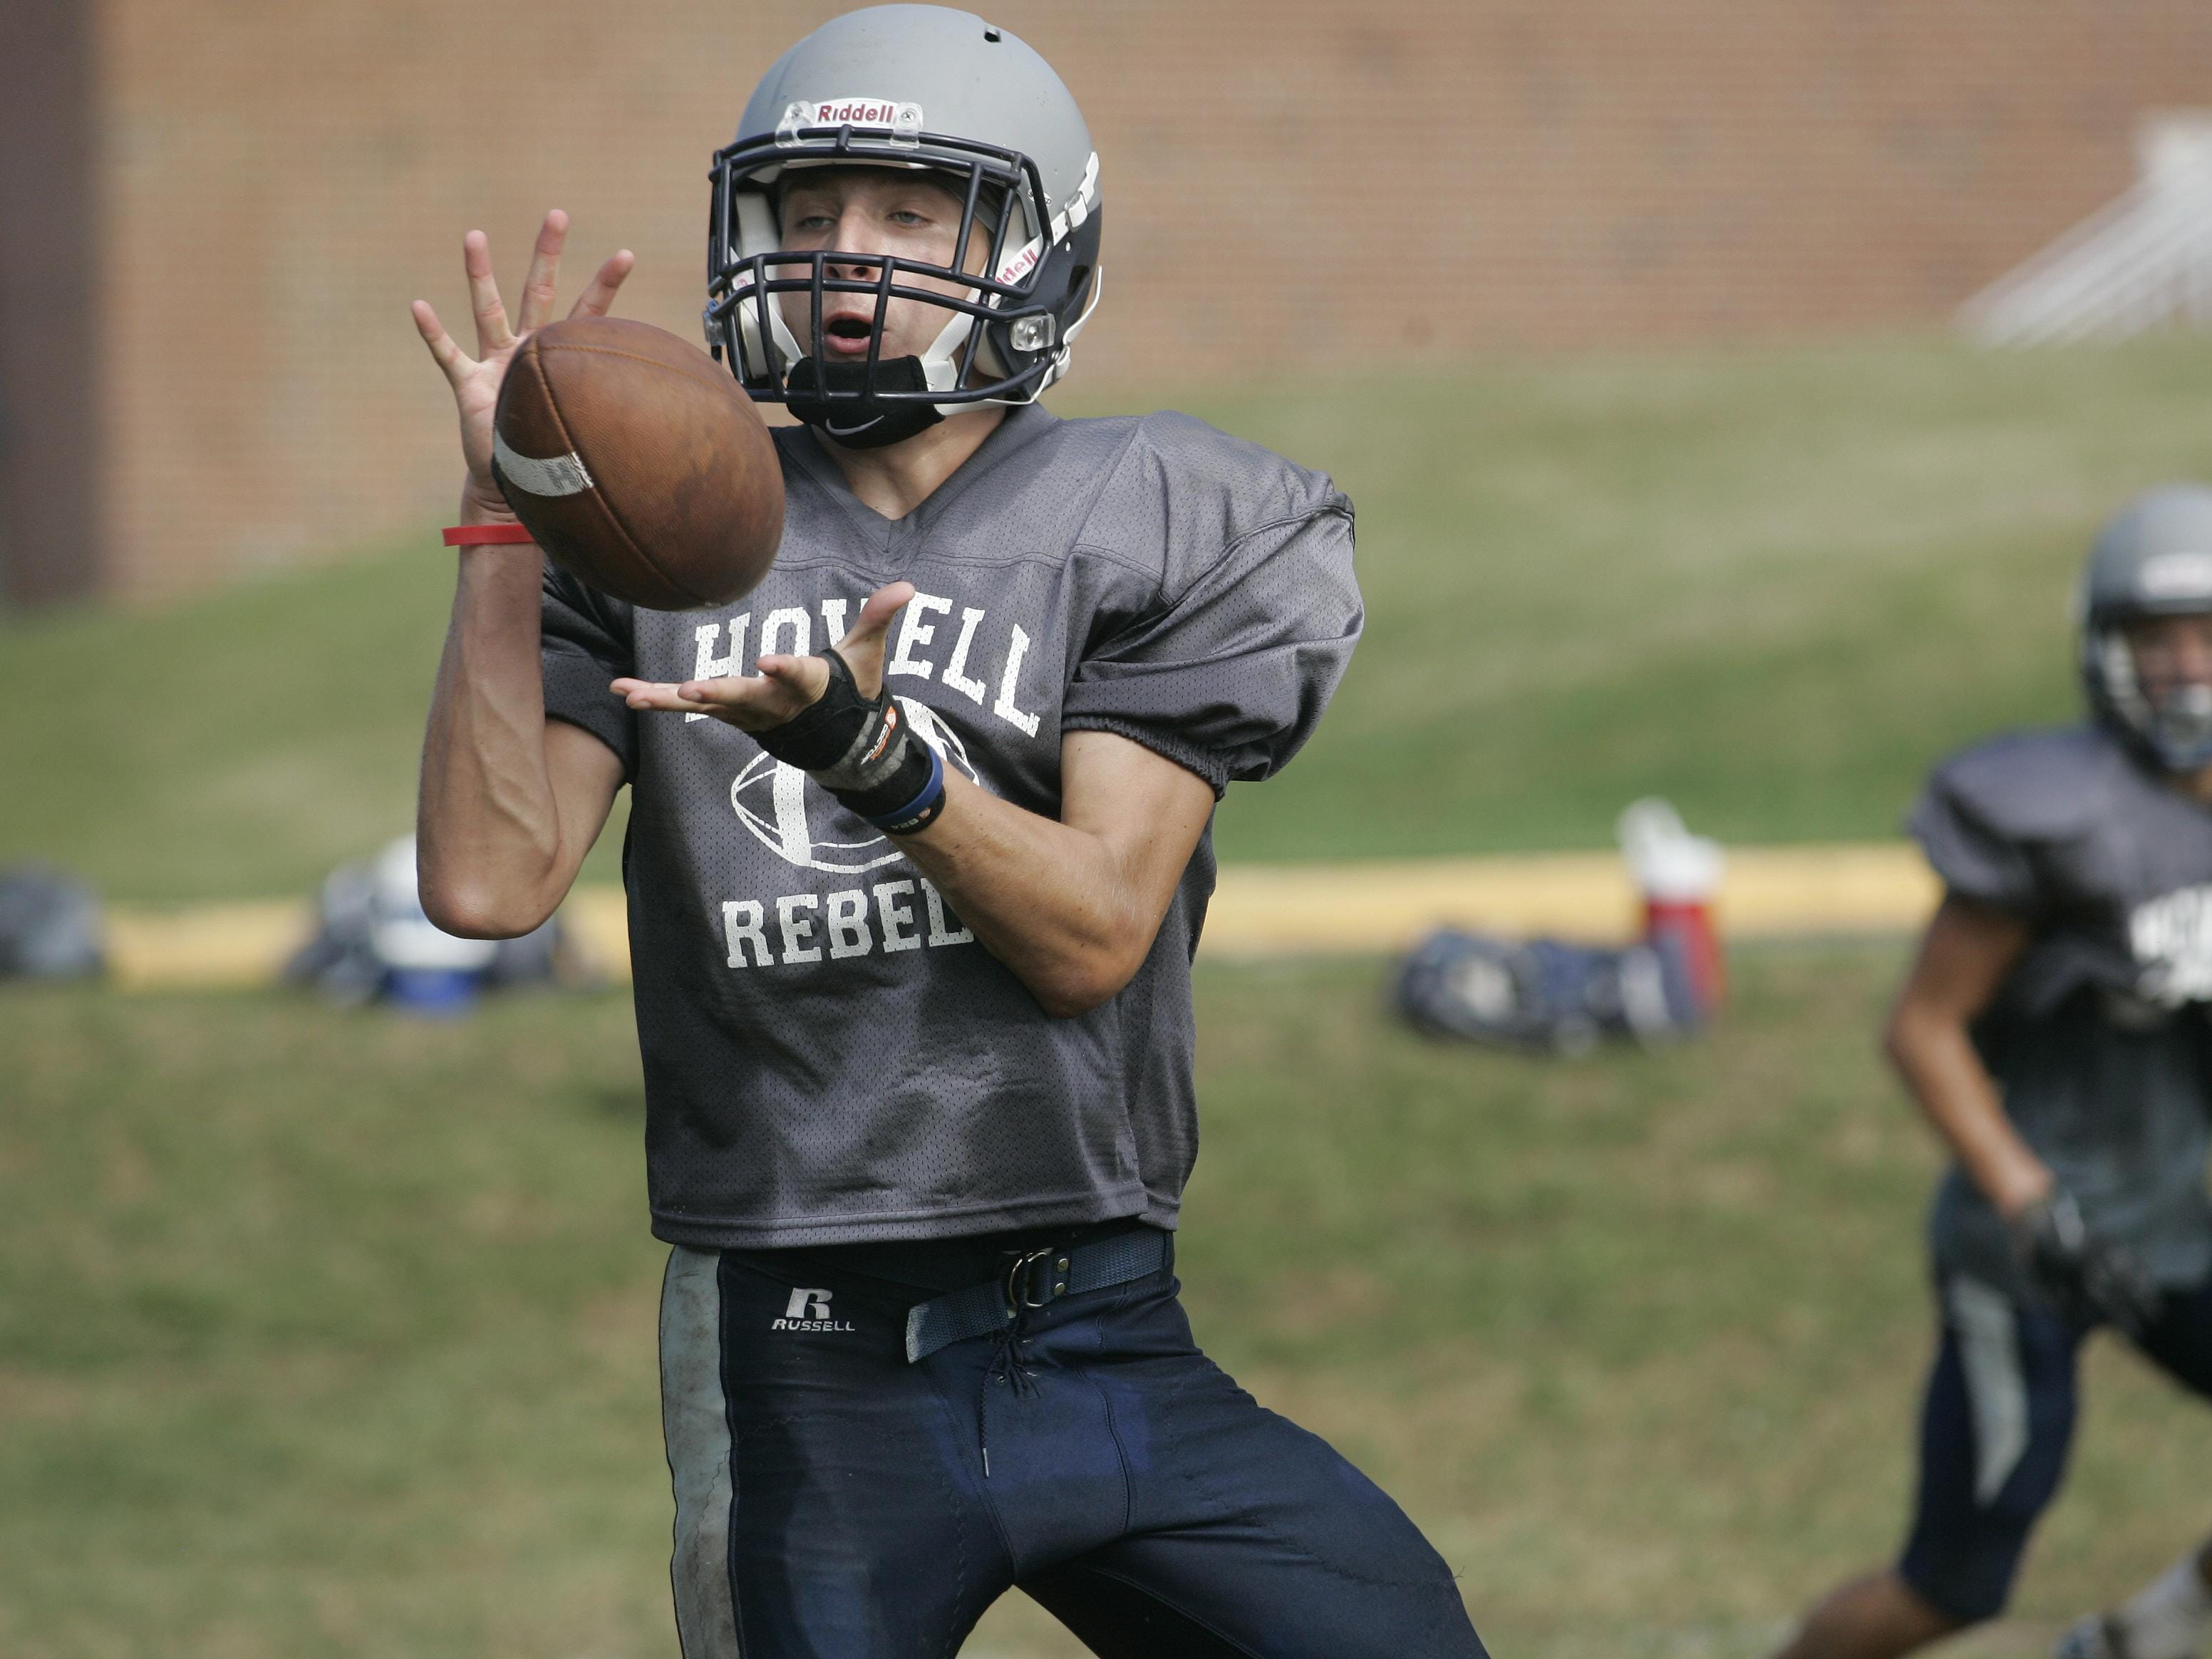 Howell wide receiver Nic Rossi hauls in a pass during practice.